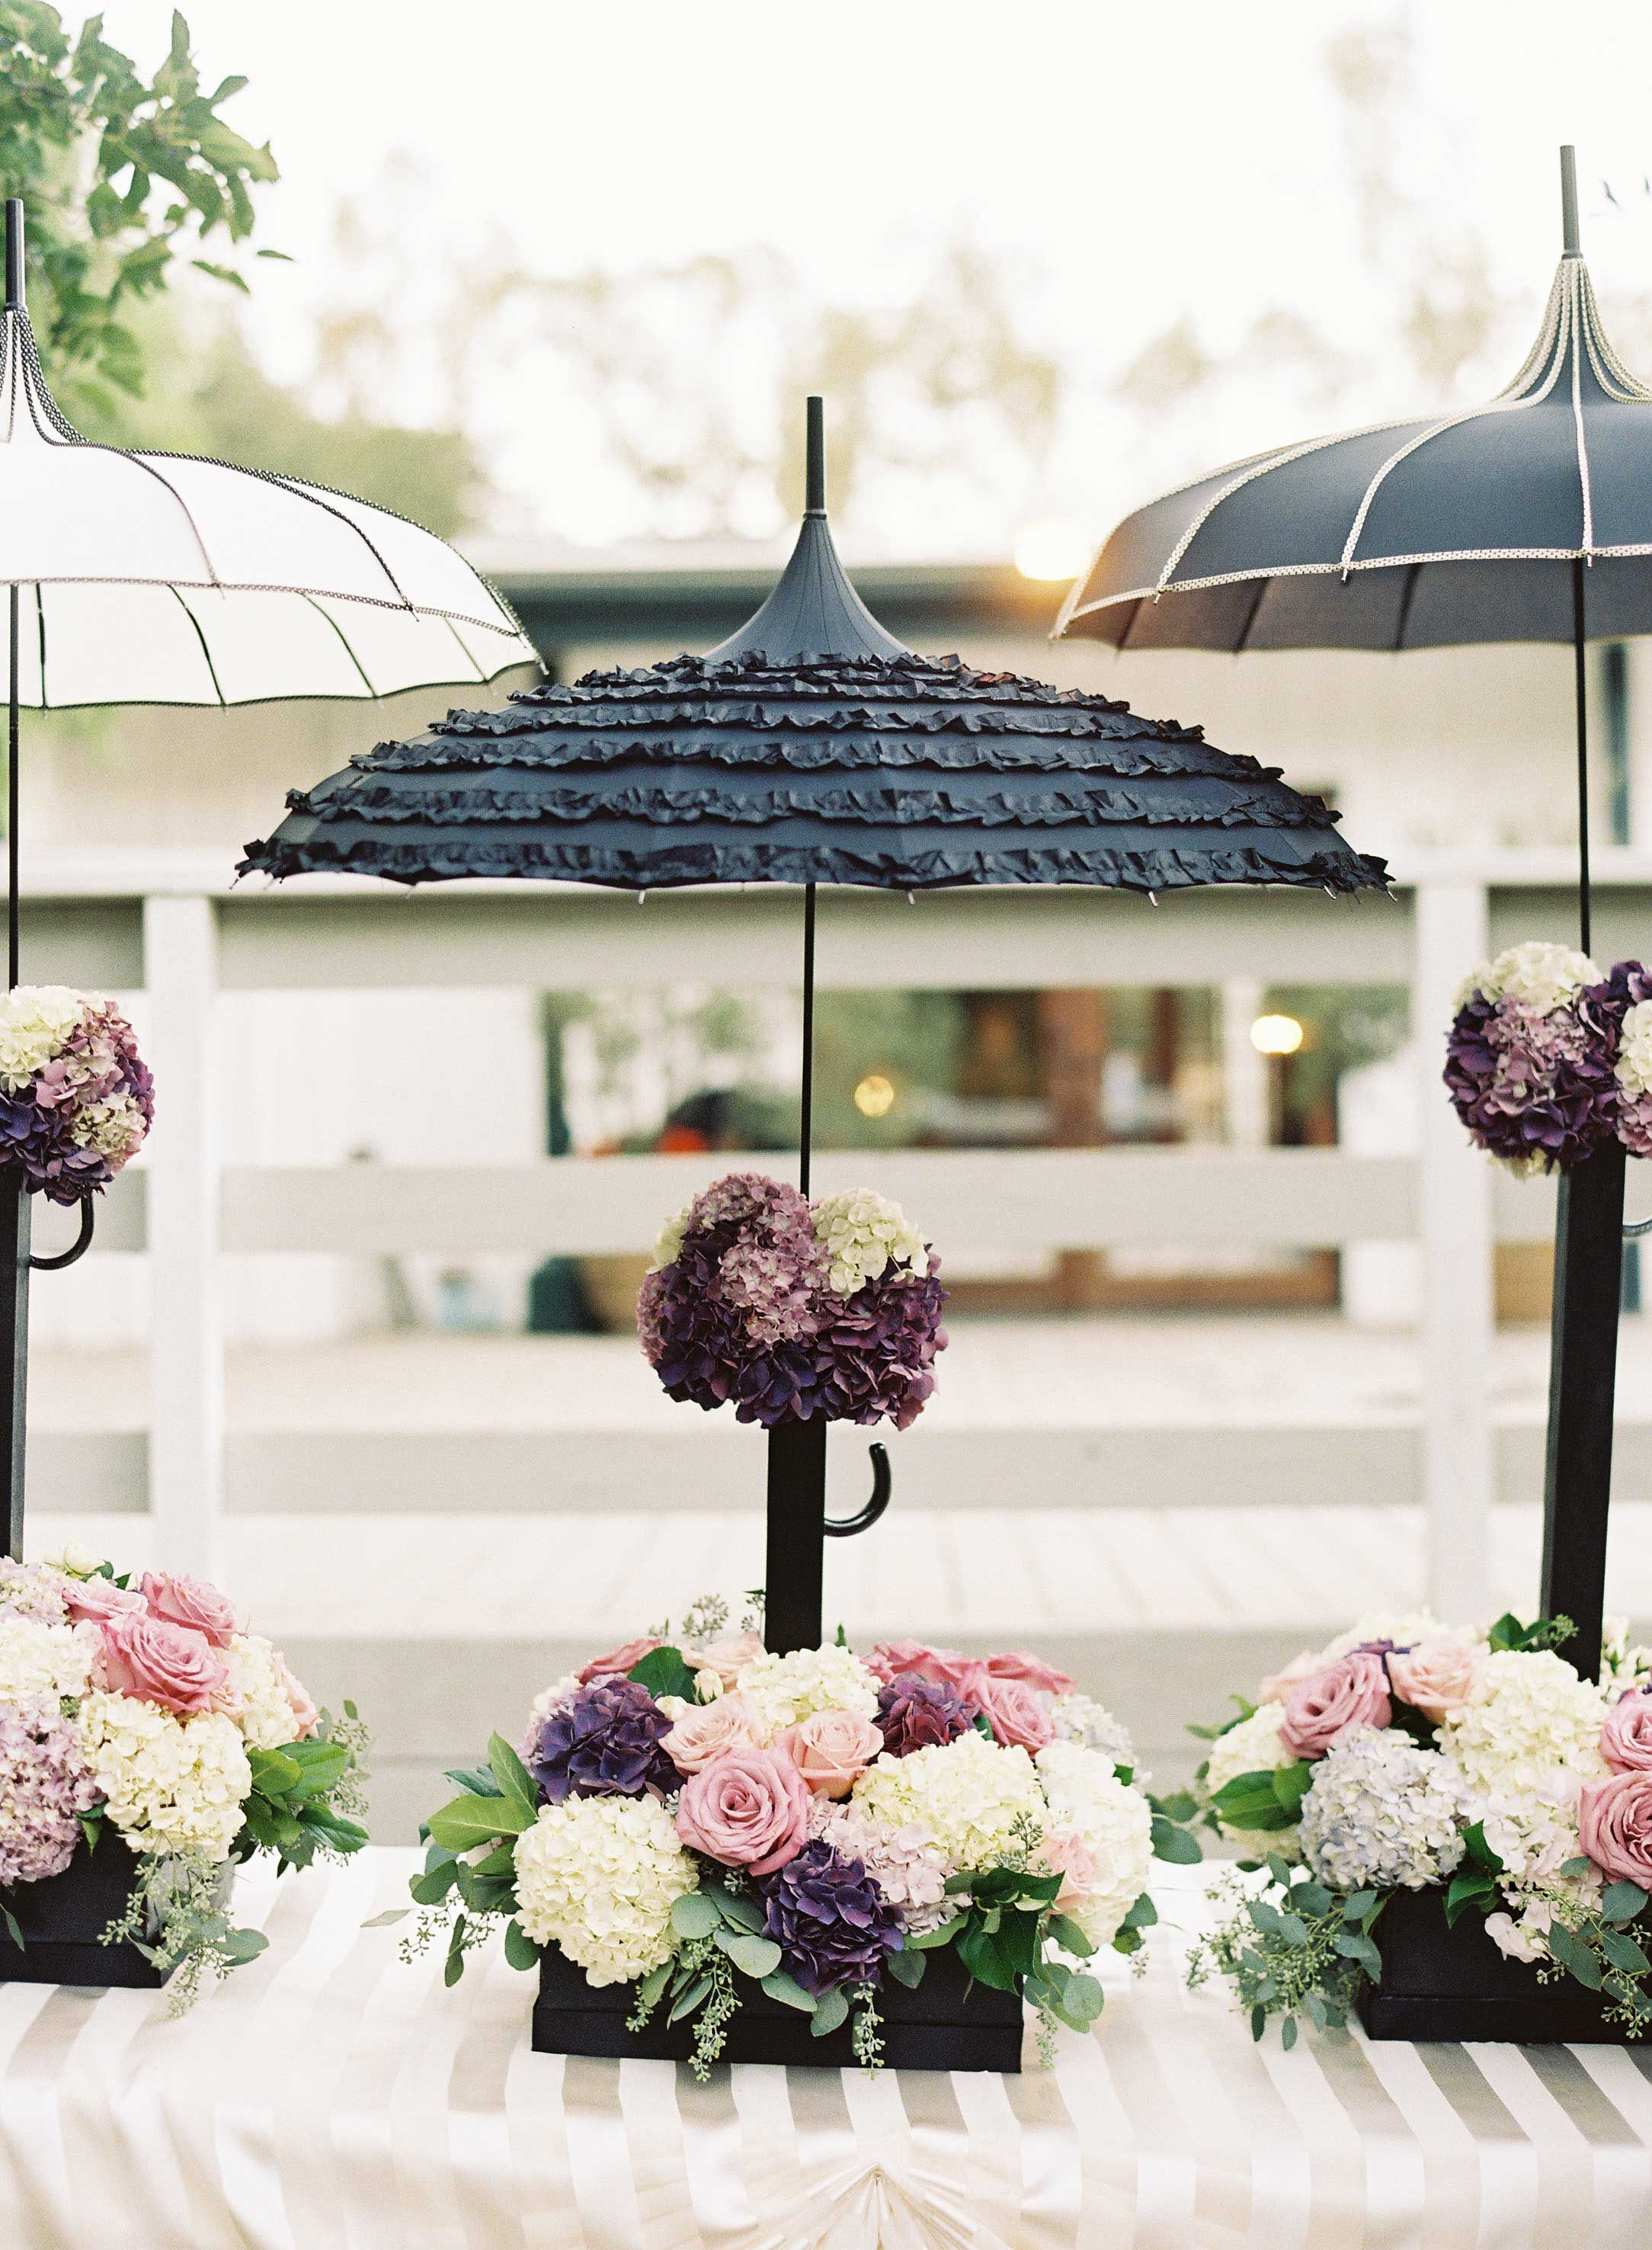 Magical Garden Ceremony + Tented Reception With Chic